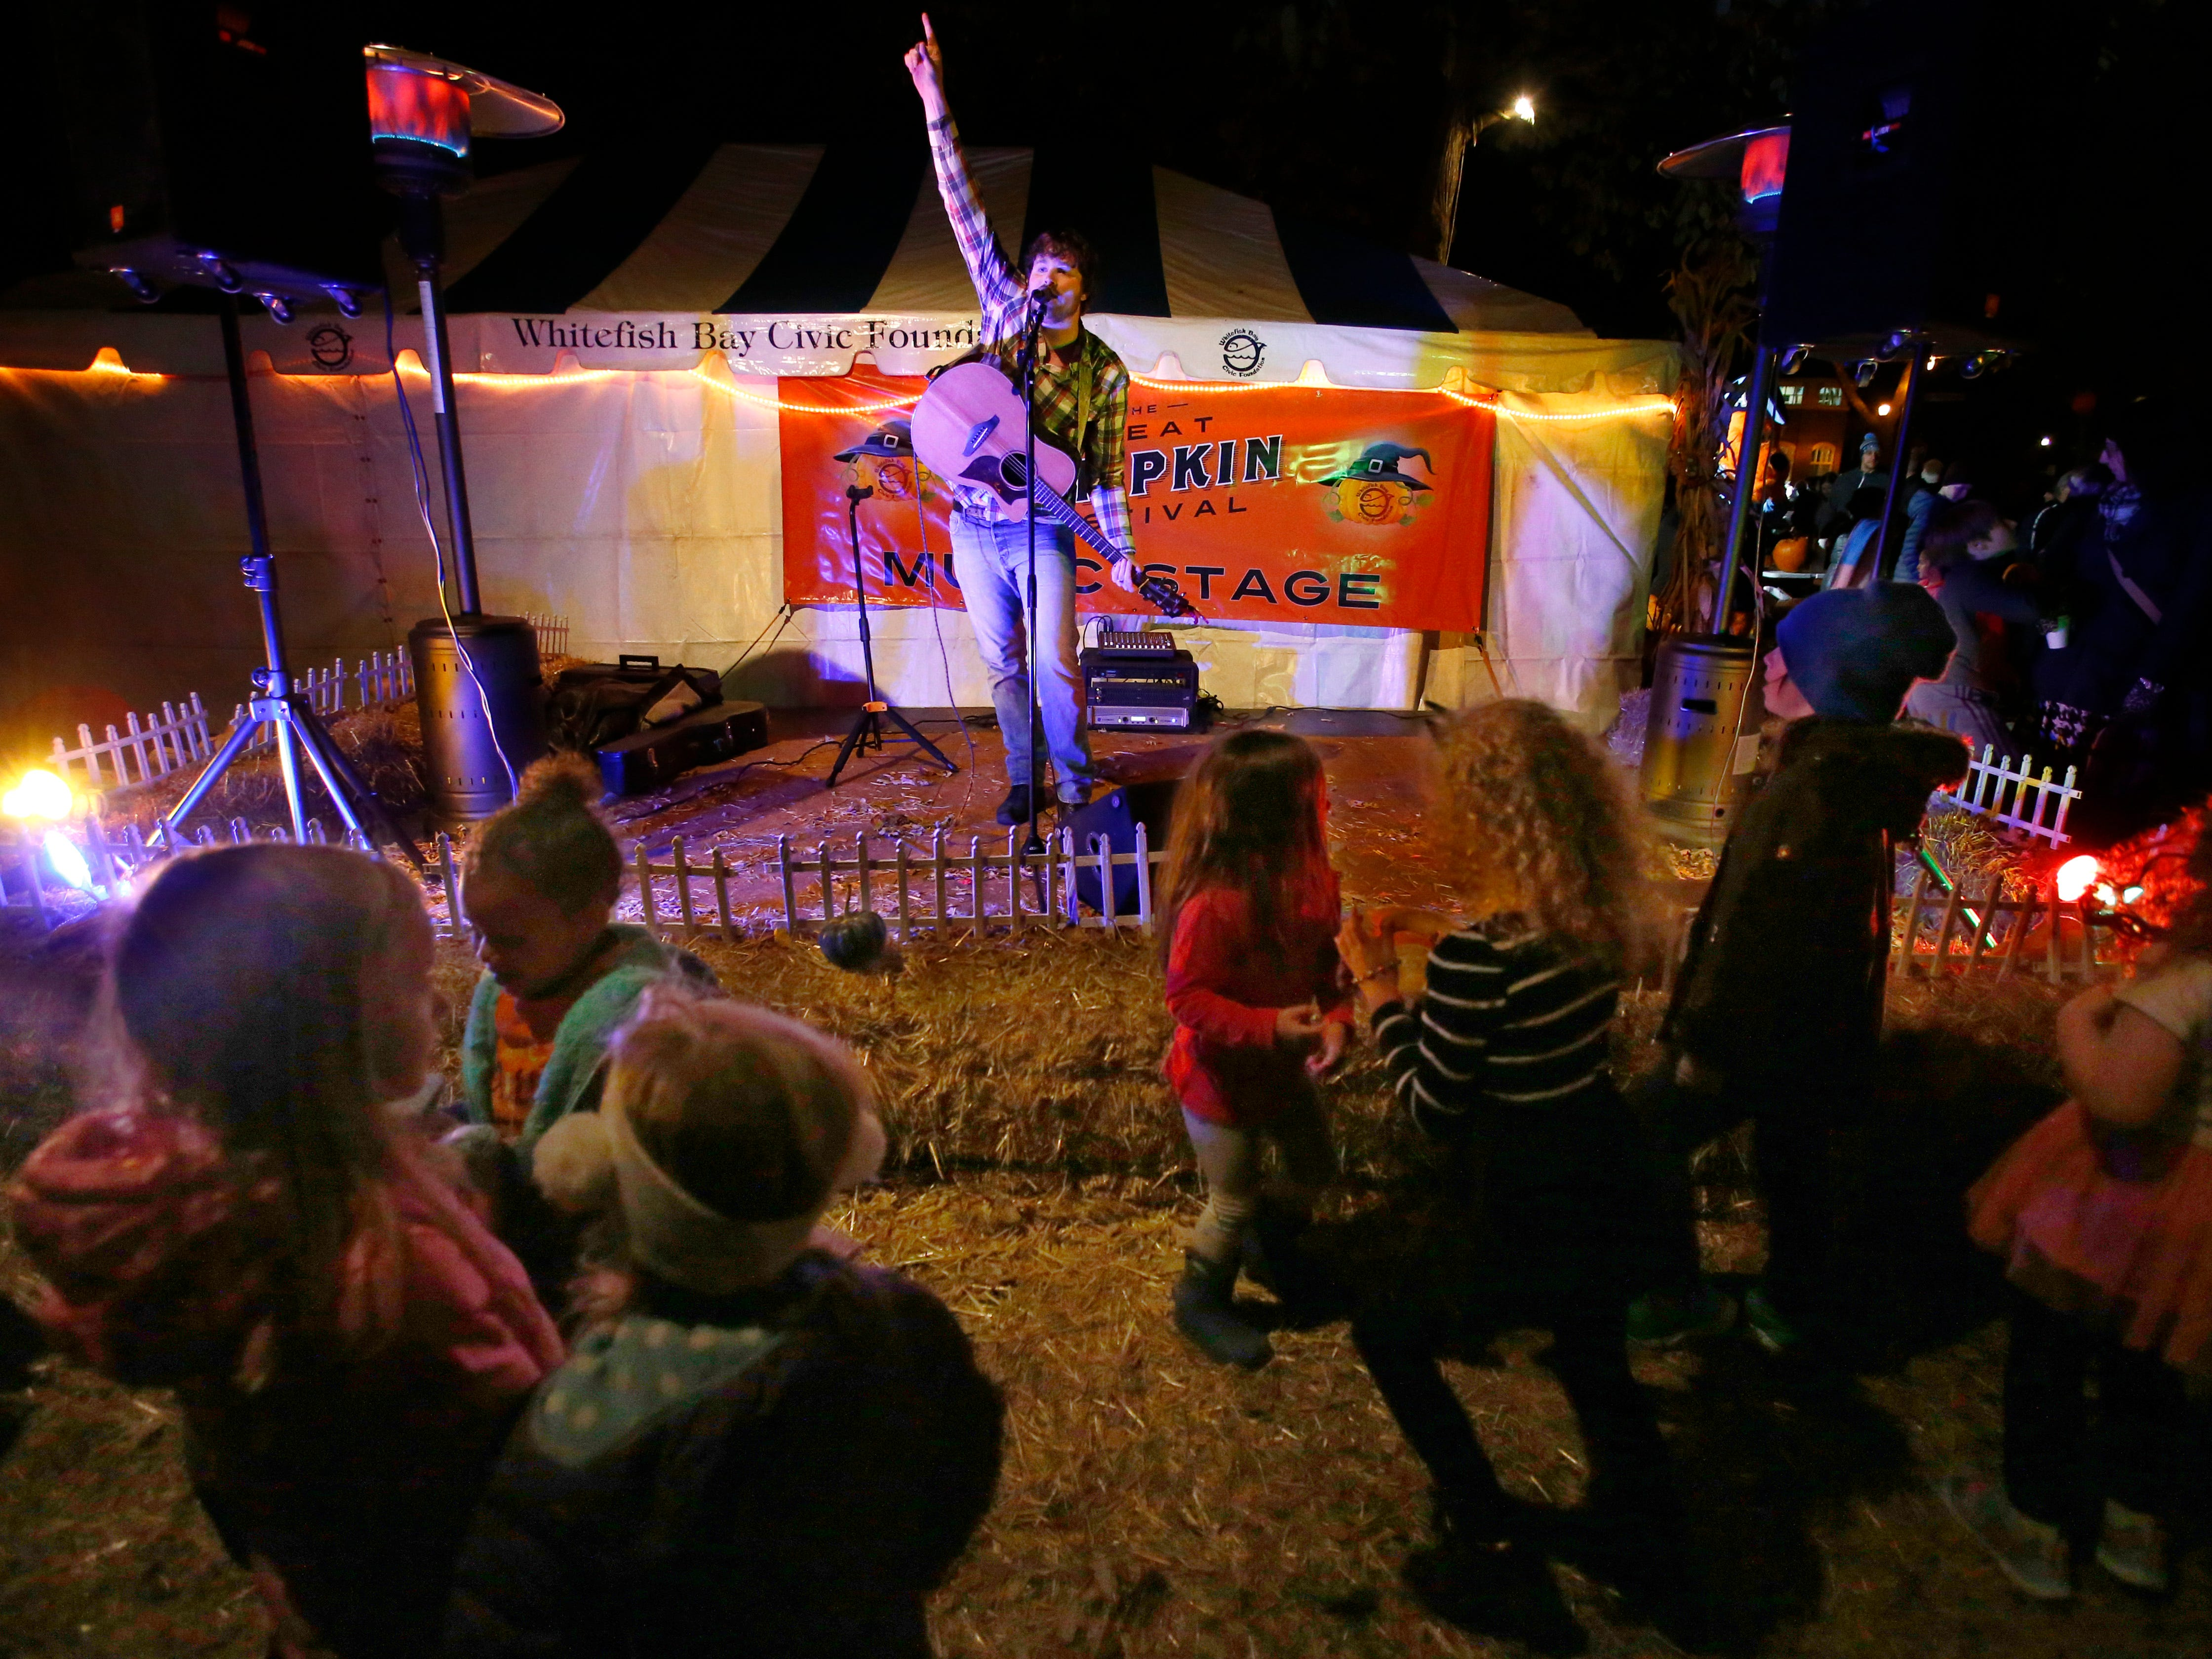 Musician Jay Matthes gets families dancing at the 32nd annual Whitefish Bay Great Pumpkin Festival at Old Schoolhouse Park, hosted by the Whitefish Bay Civic Foundation, on Oct. 25. The festival runs from 6 to 9 p.m. Wednesday, Oct. 24, through Sunday, Oct. 28.